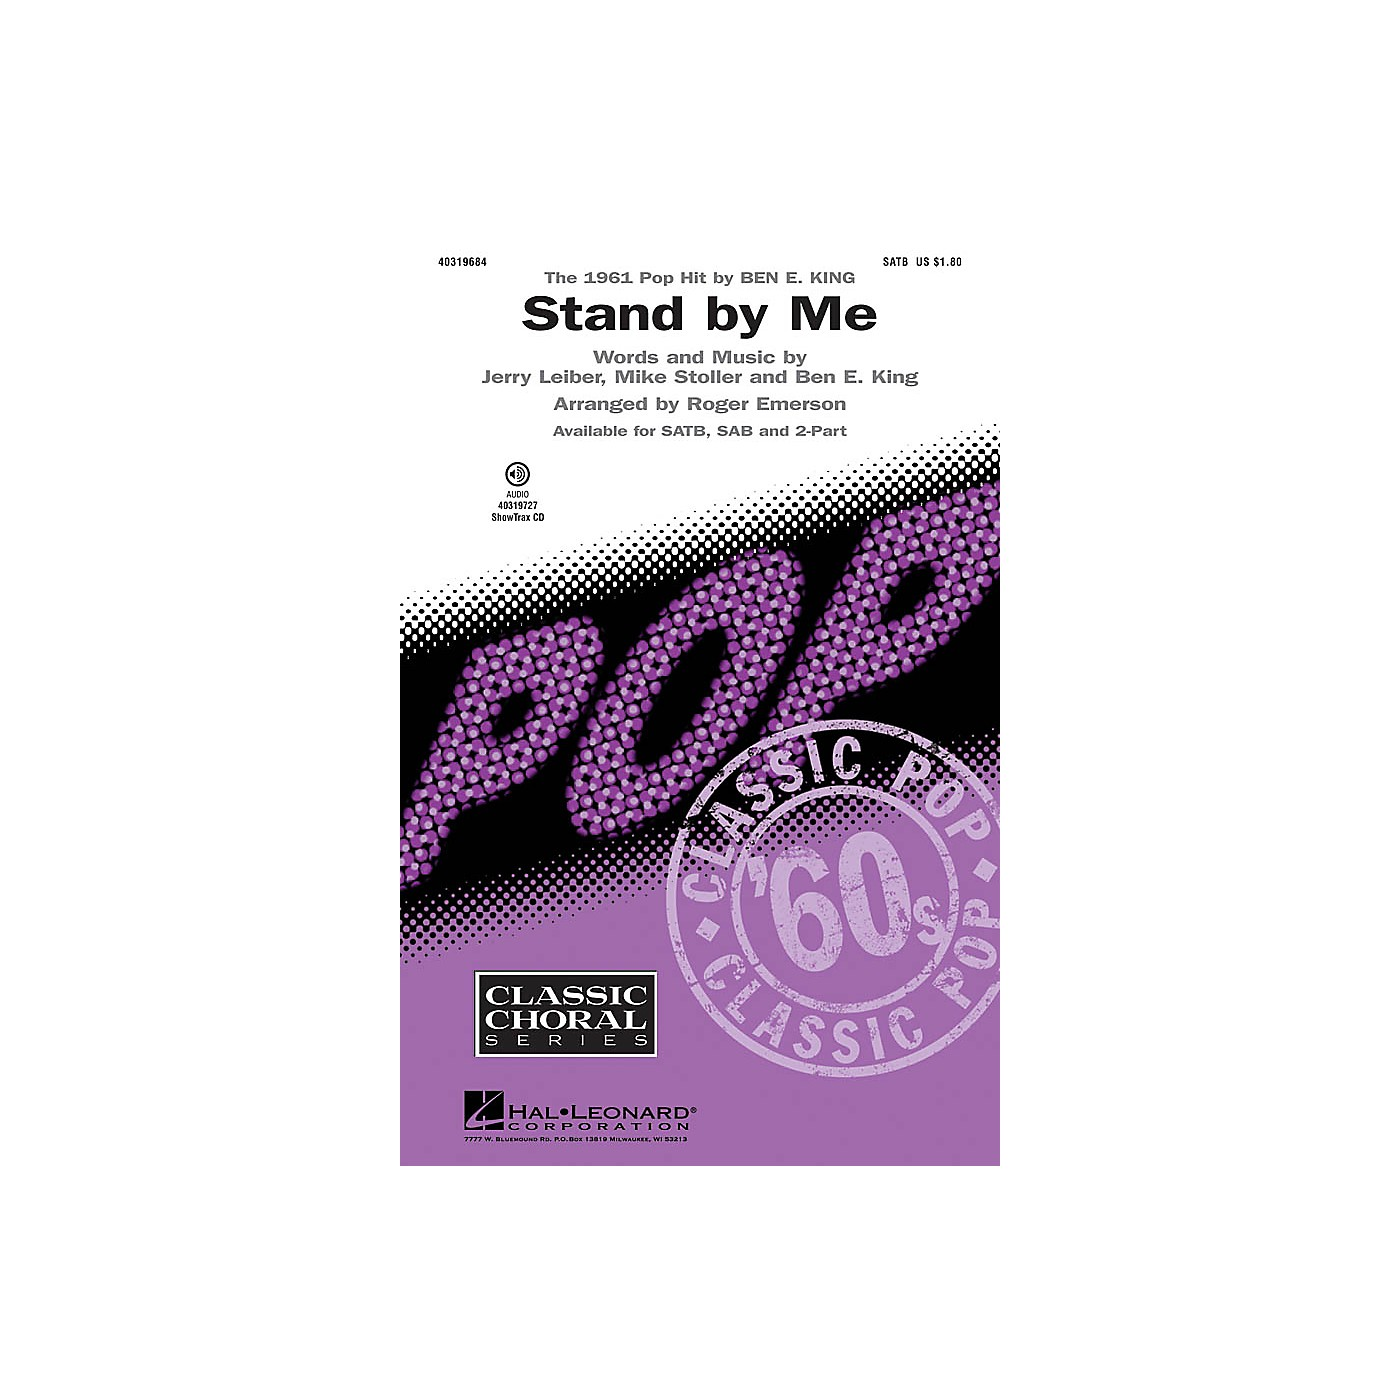 Hal Leonard Stand by Me SATB arranged by Roger Emerson thumbnail